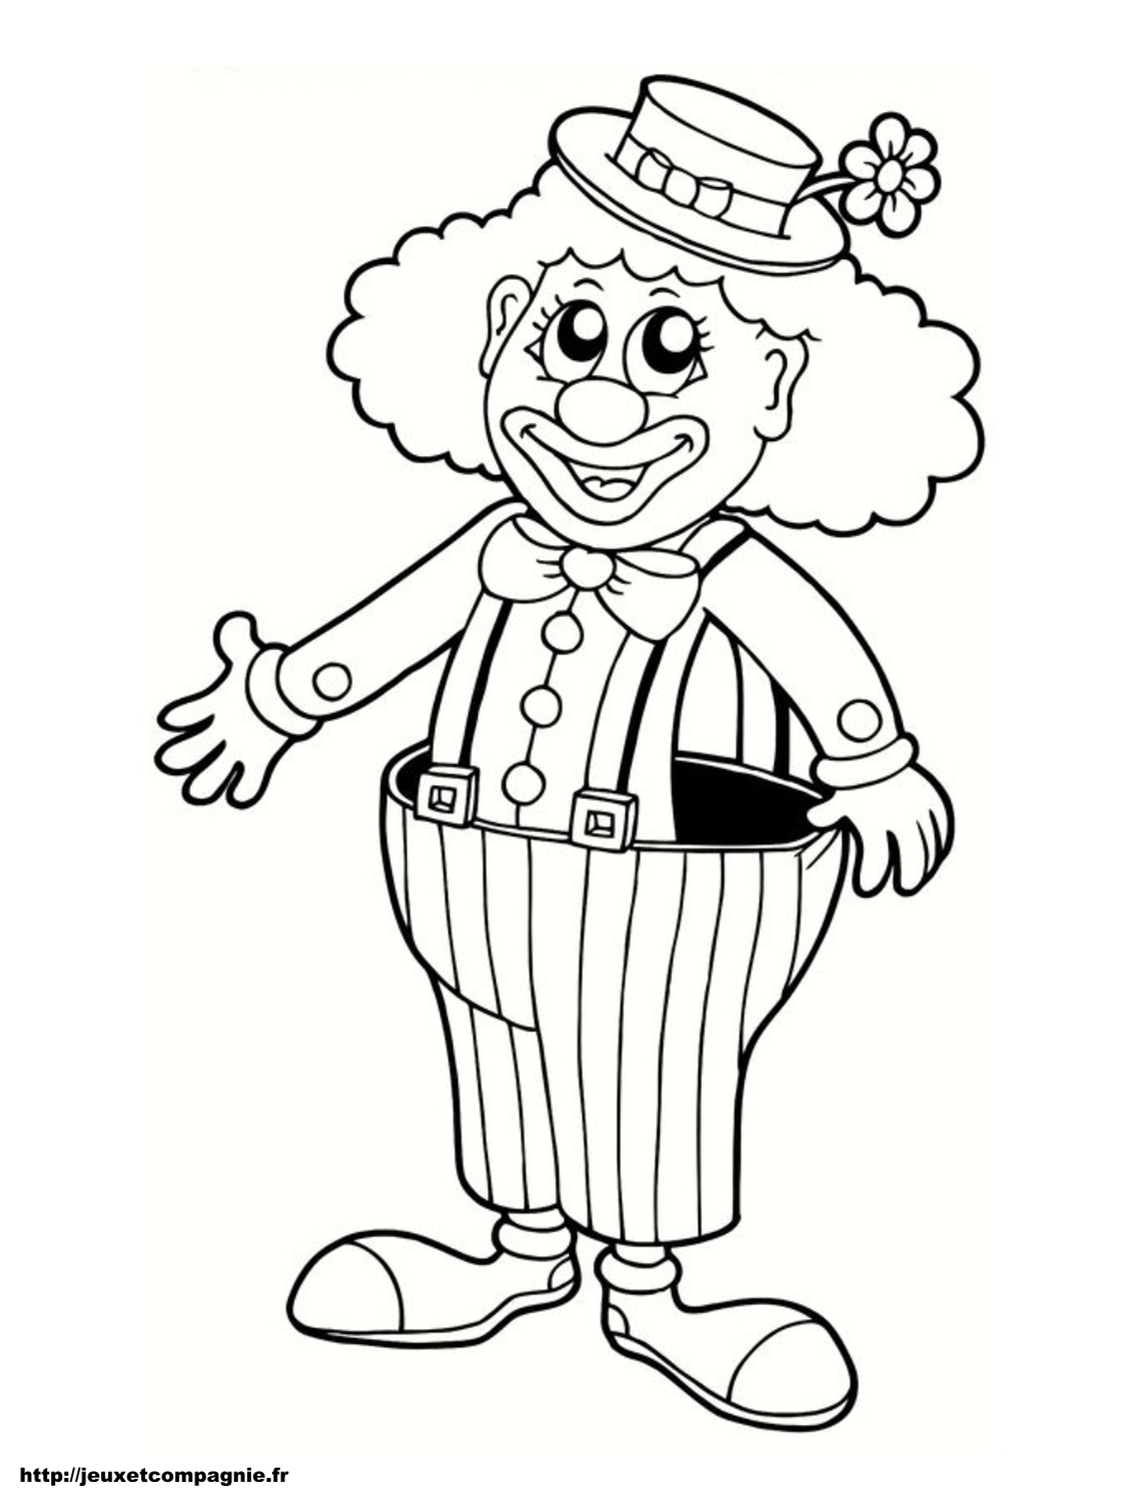 33 Dessins De Coloriage Clown À Imprimer à Coloriage Clown A Imprimer